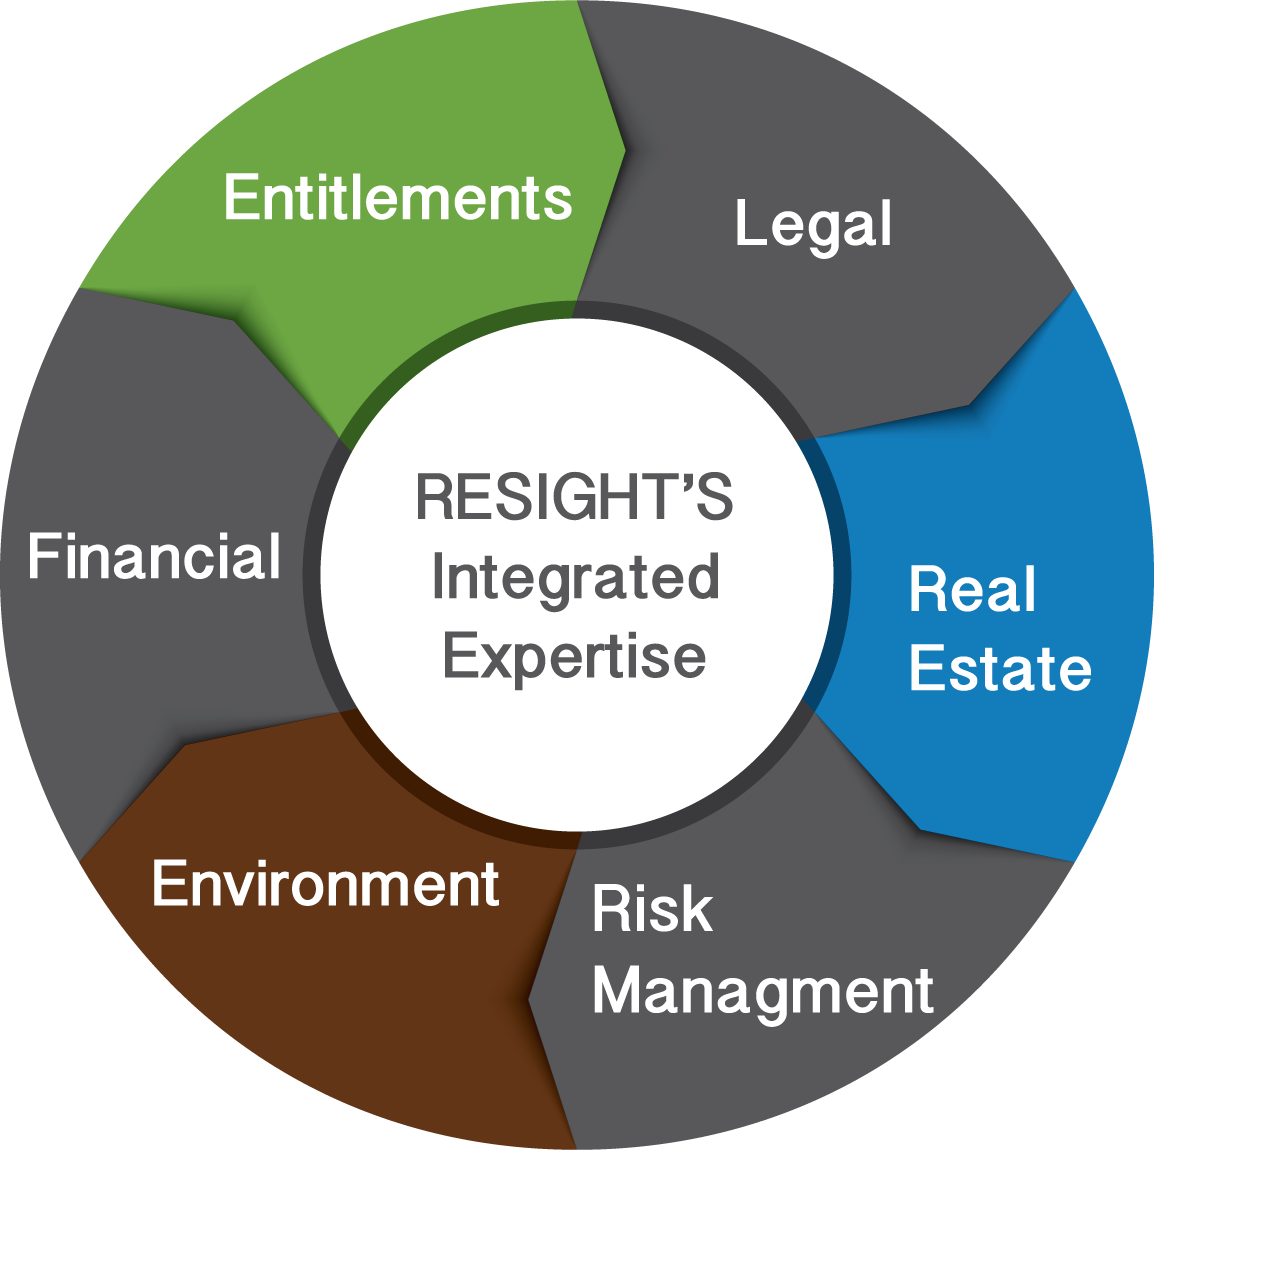 resight-expertise-model